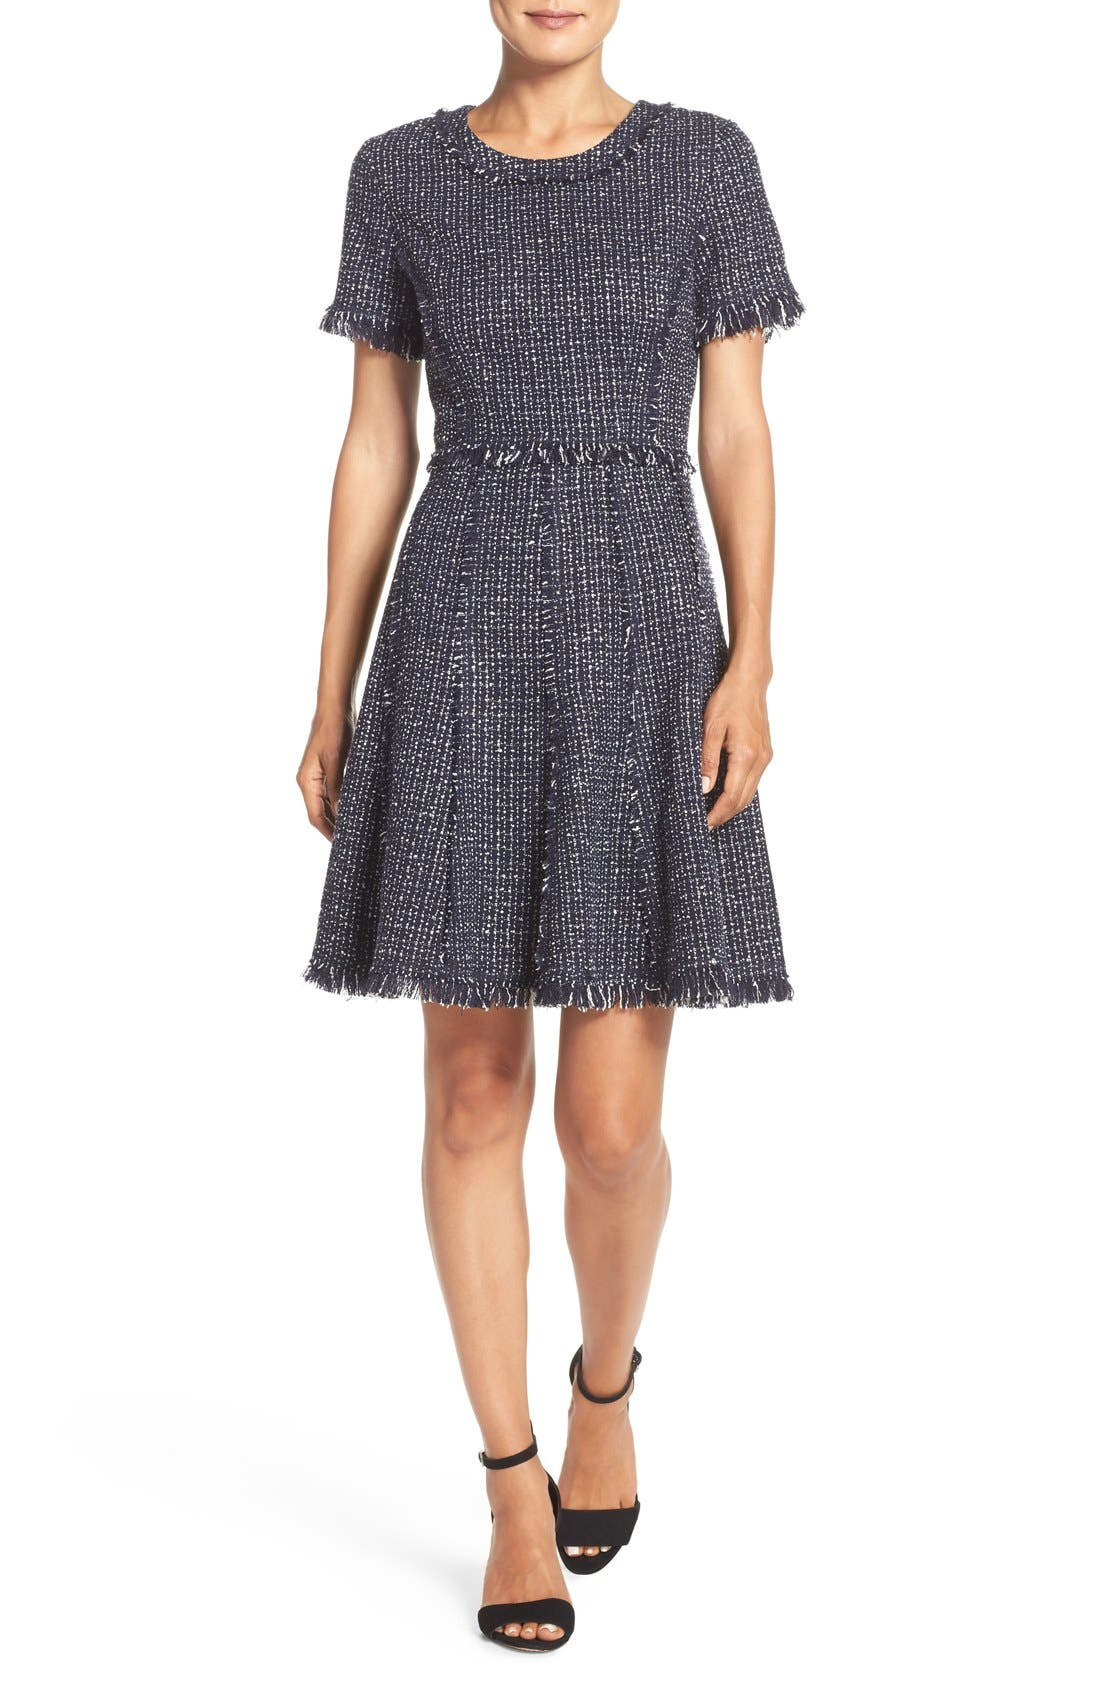 ELIZA J, Tweed Fit & Flare Dress, Main thumbnail 1, color, 410